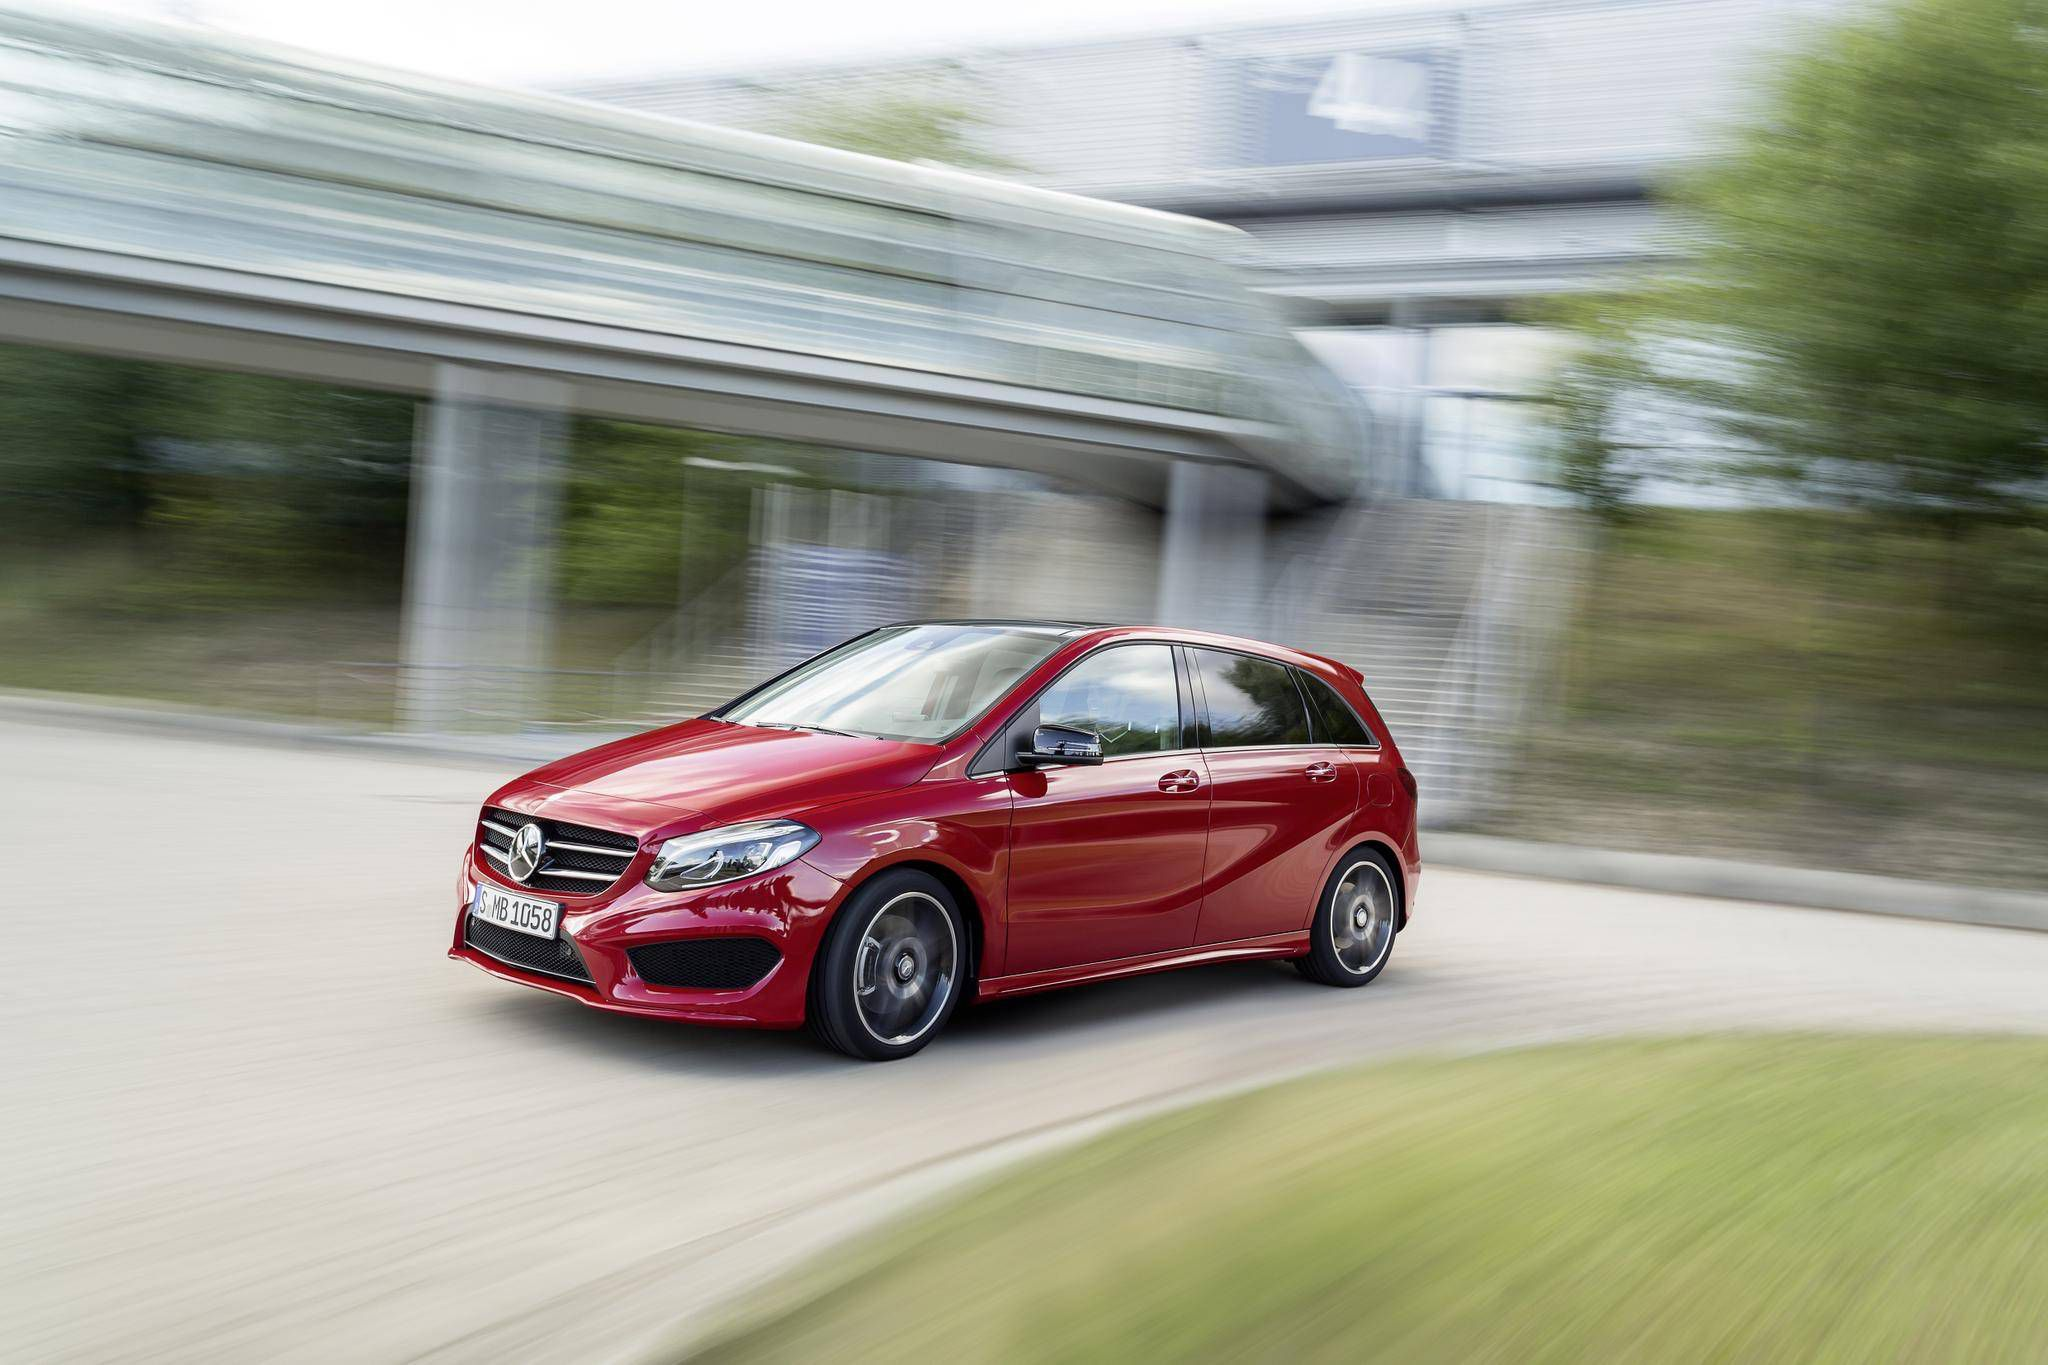 Buying used: We want a family-friendly car that feels luxurious ...